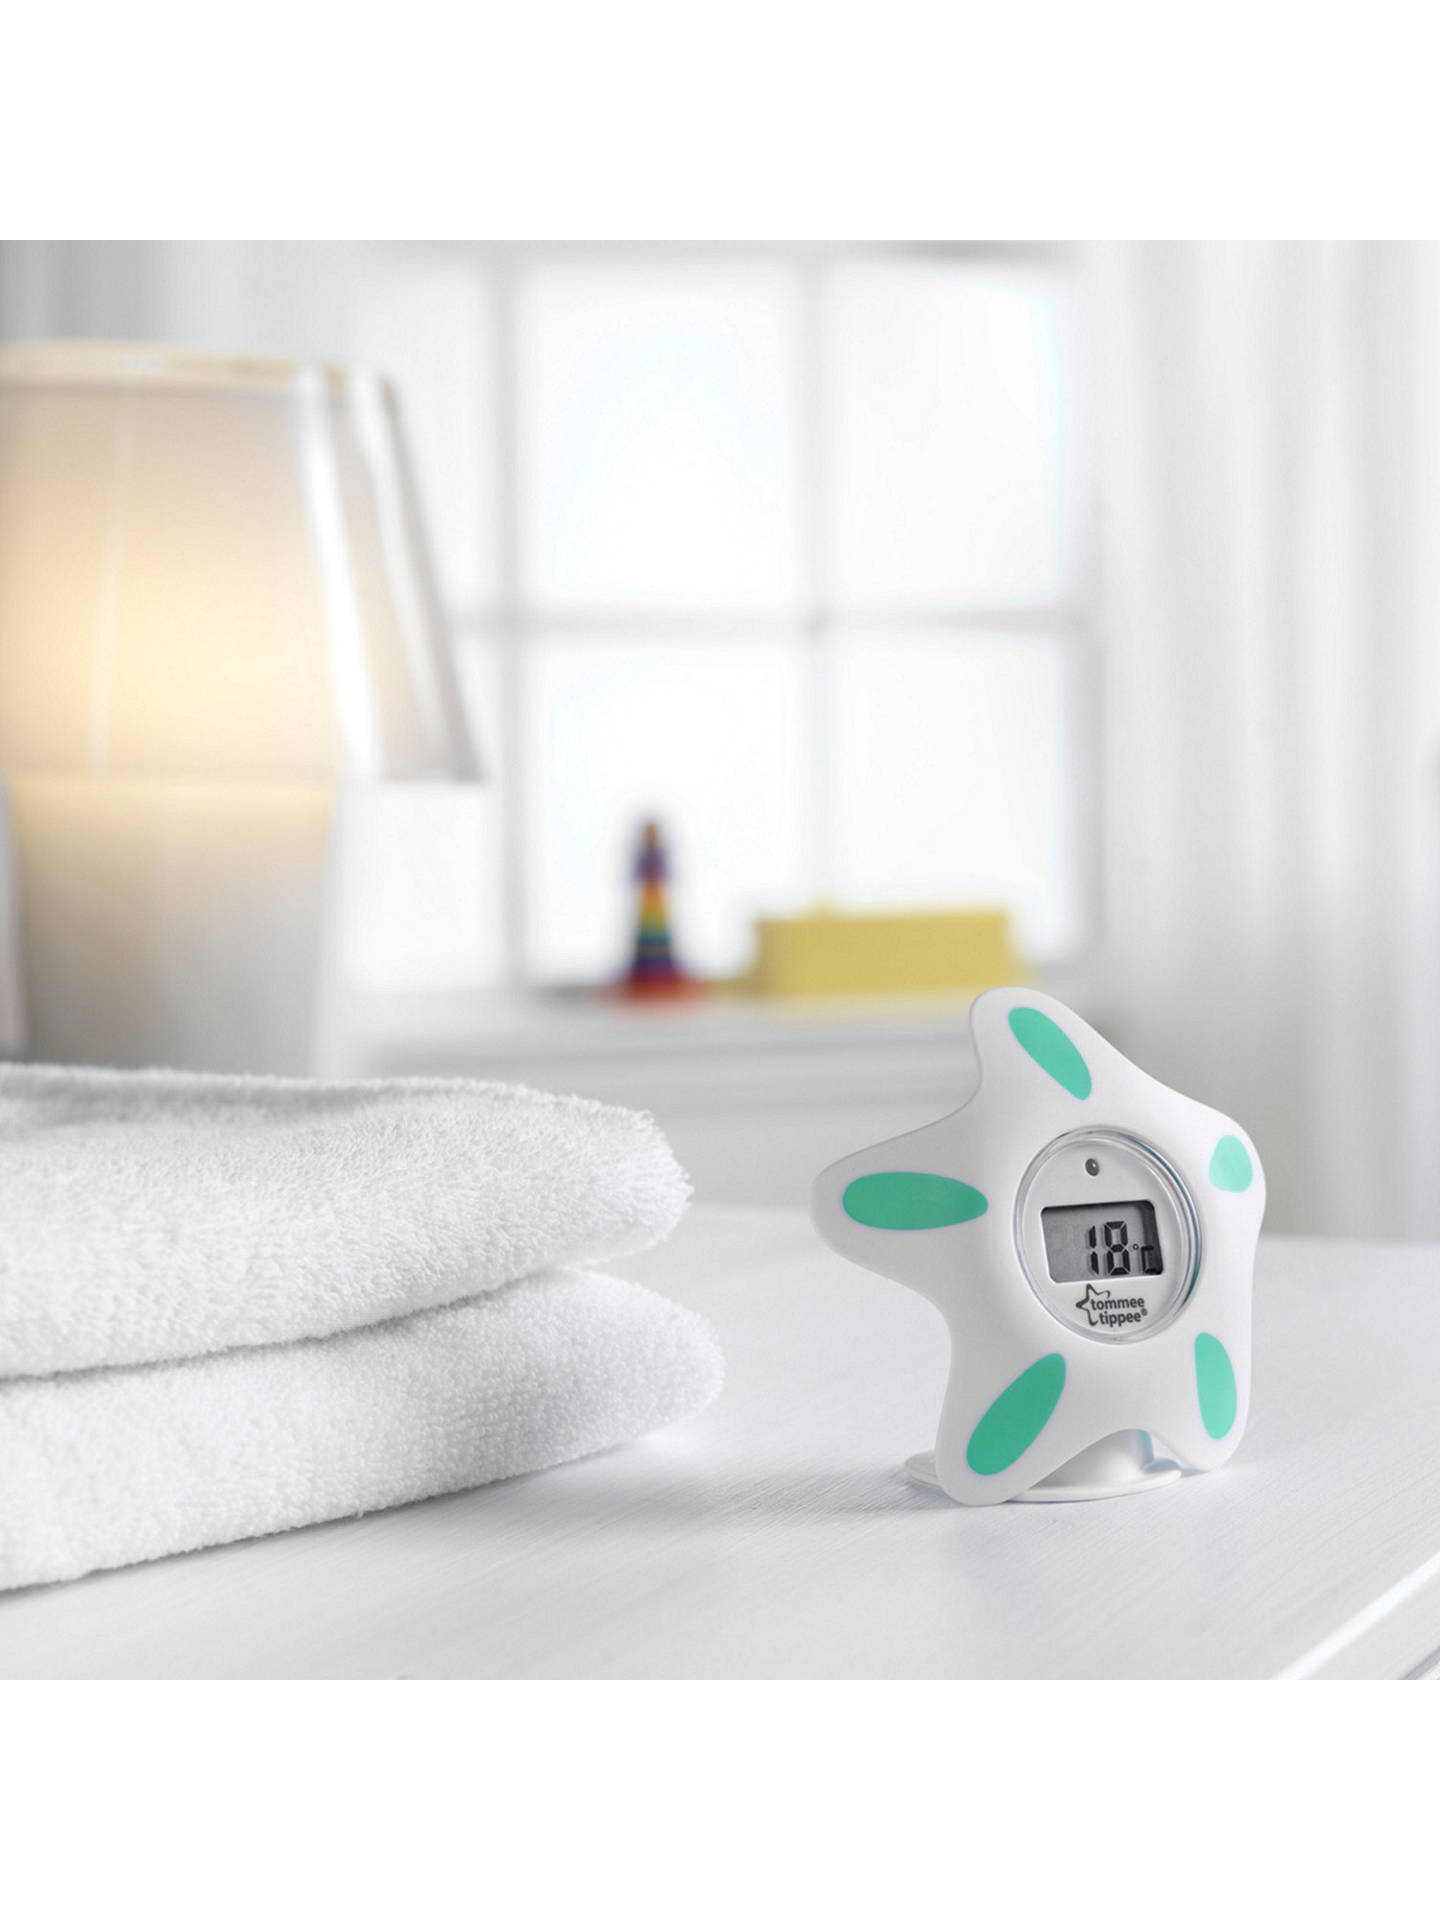 Buy Tommee Tippee Closer to Nature Bath & Room Thermometer Online at johnlewis.com